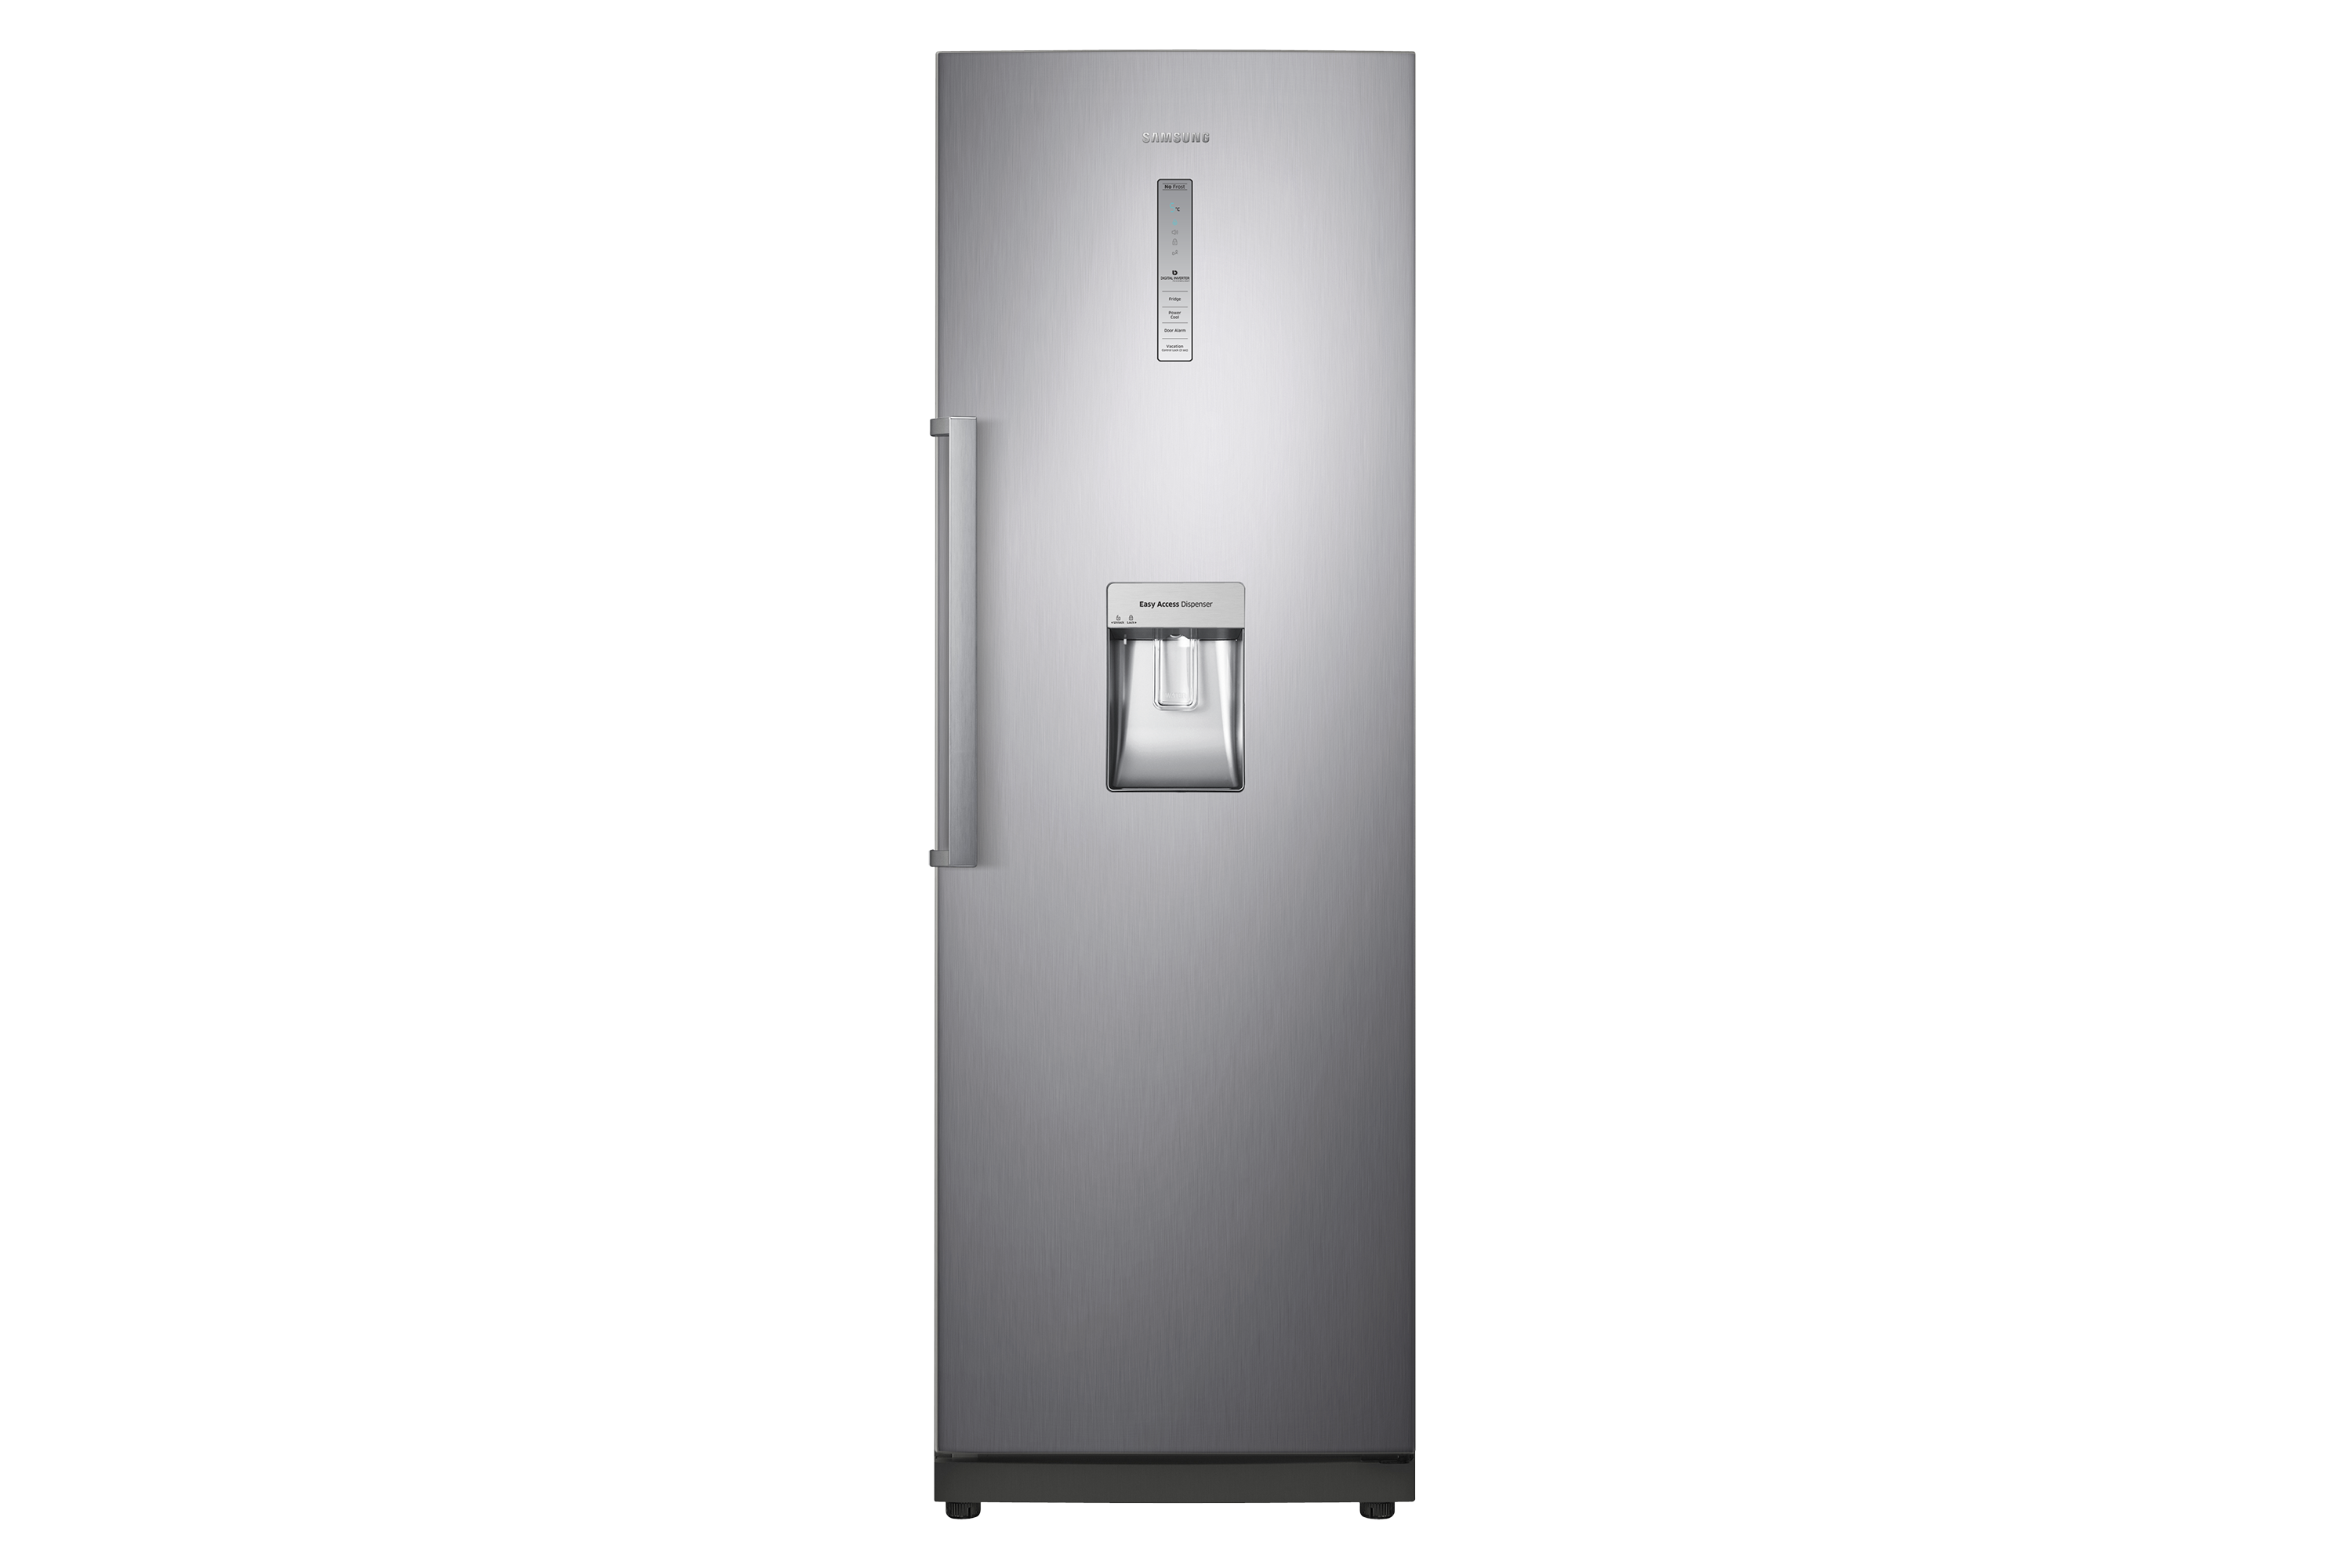 RR35H6610SS Digital Inverter Technology Refrigerator, 348 L